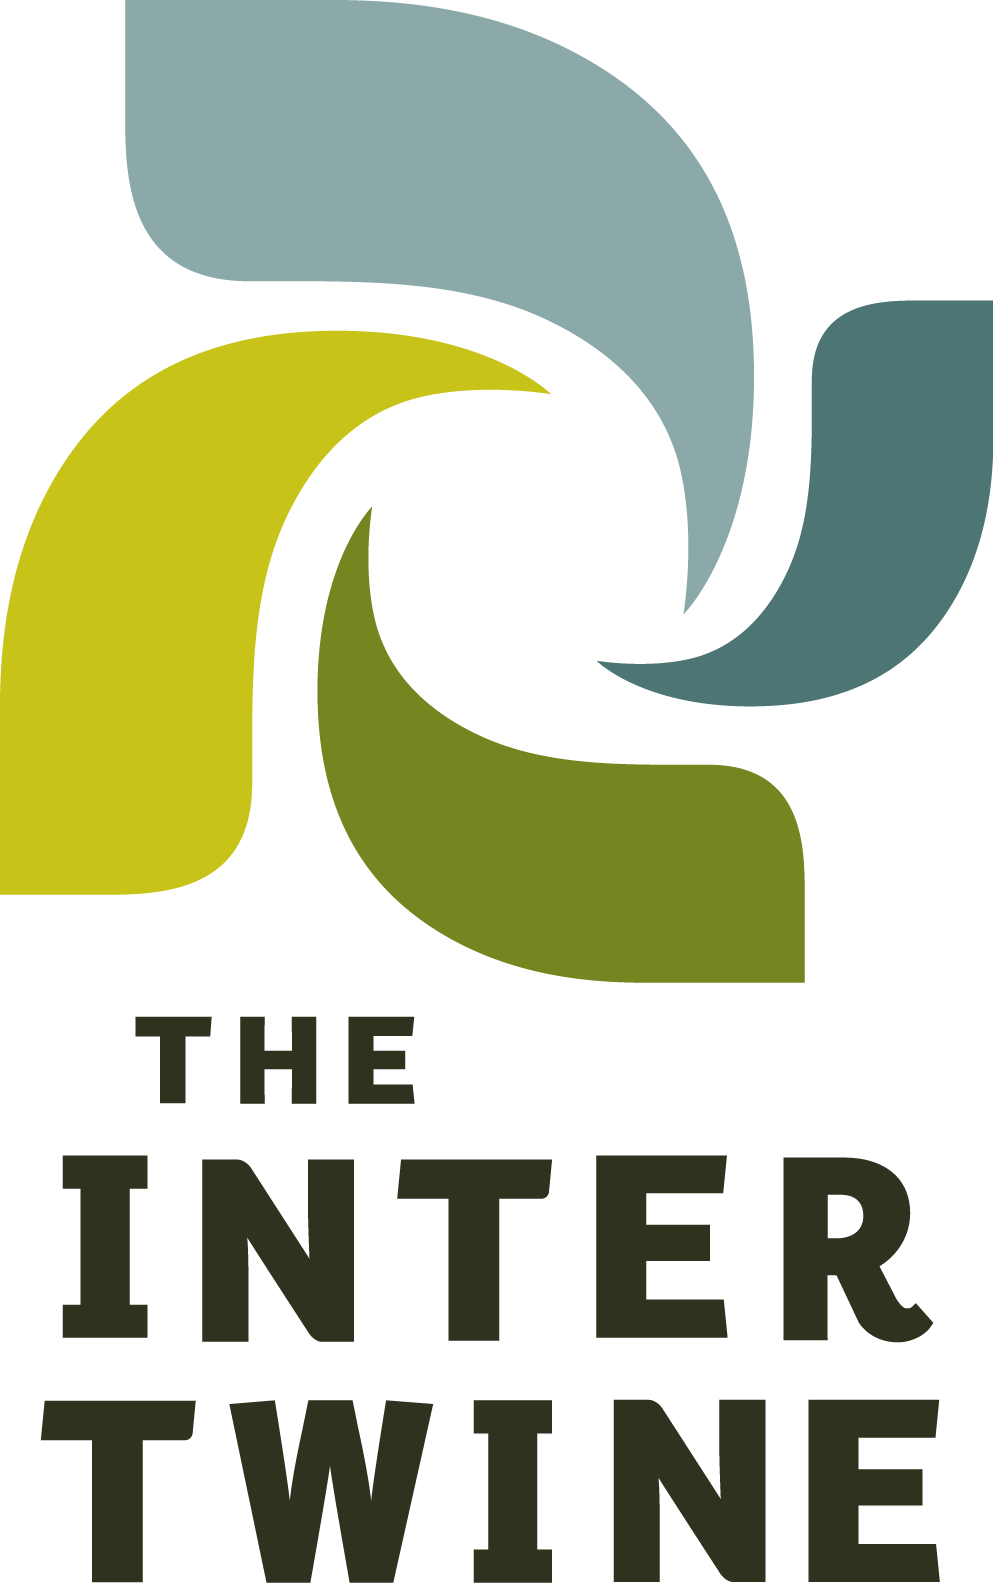 Intertwine Vertical-logo_high-resolution.png